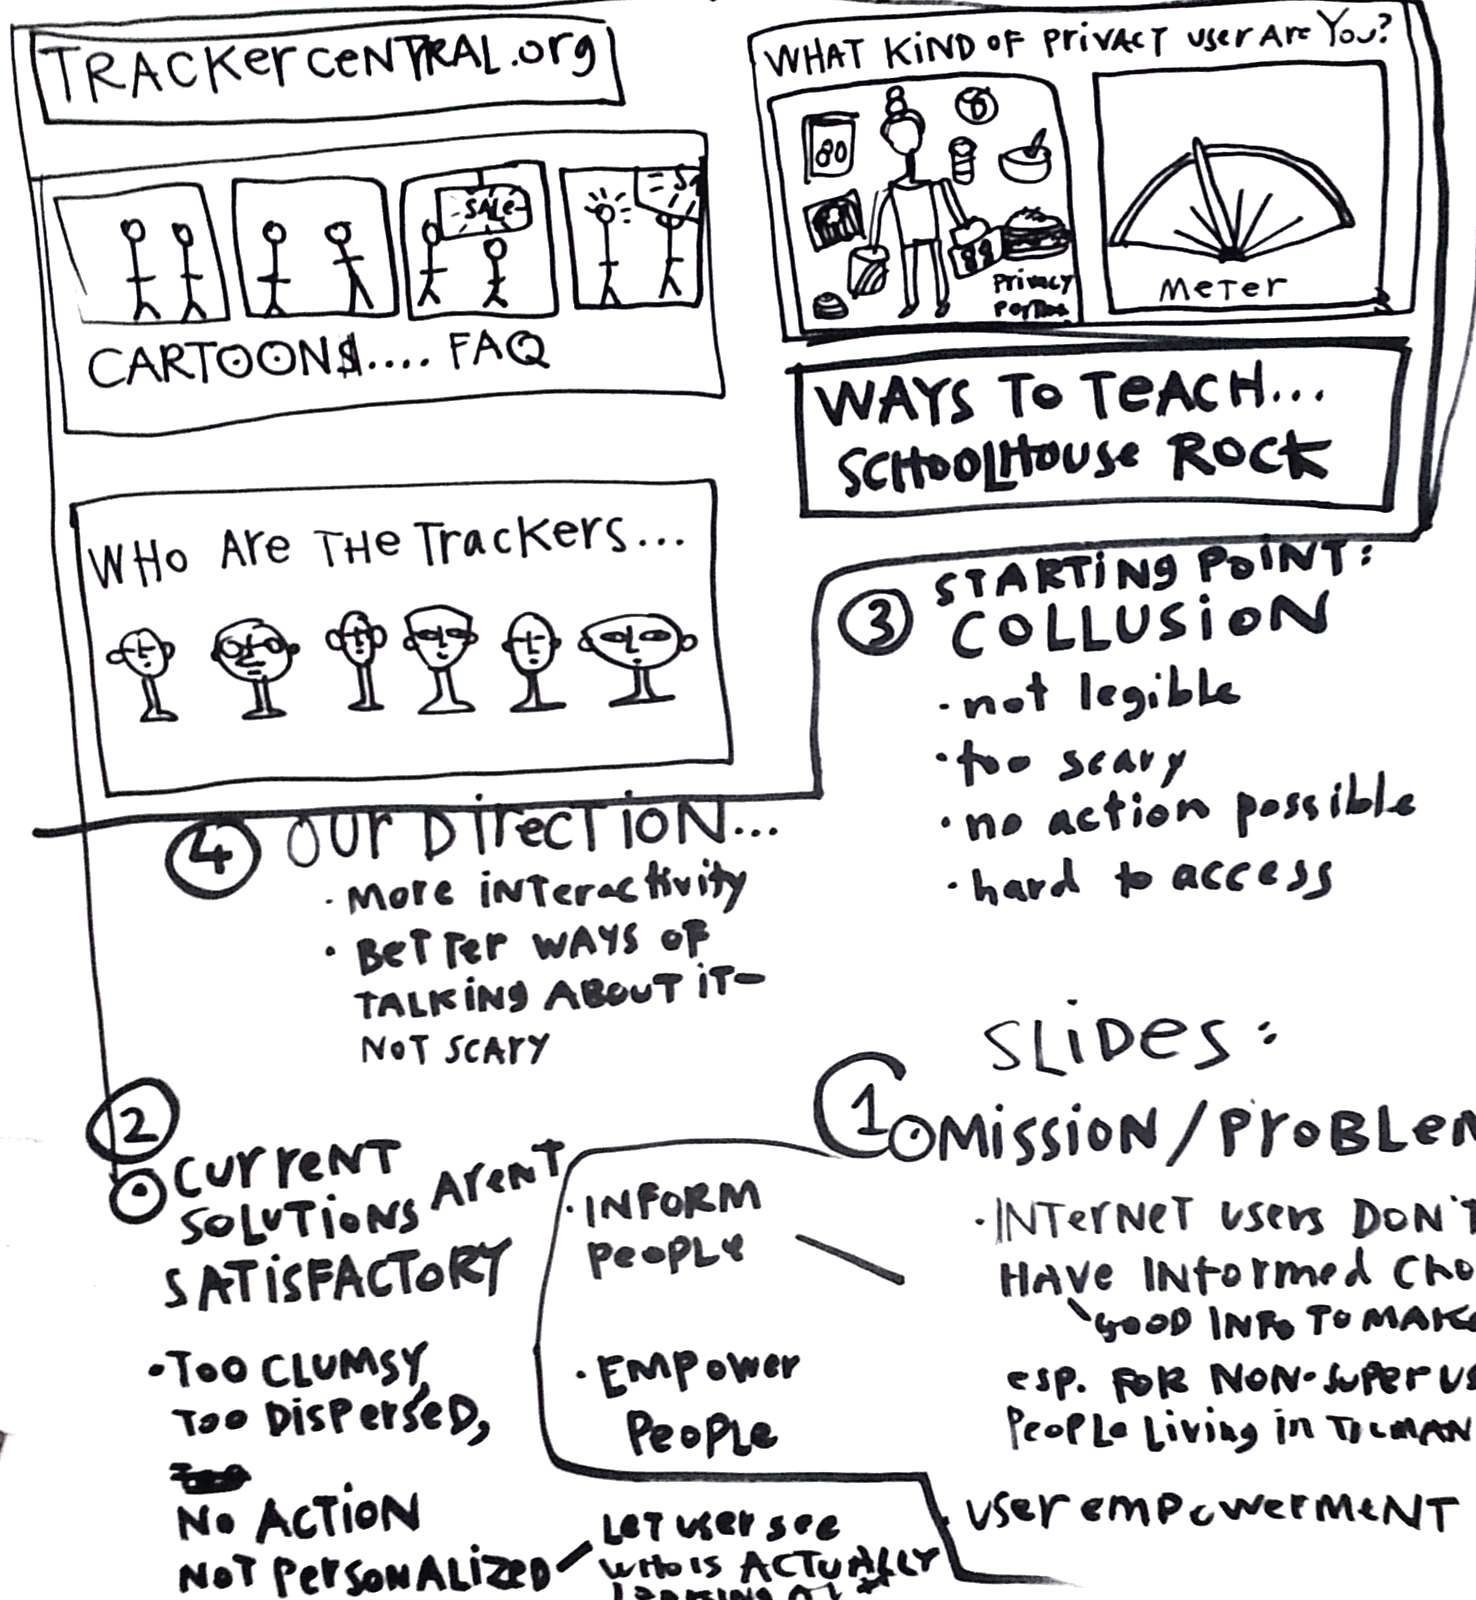 sketchnote on legal design and online privacy 3